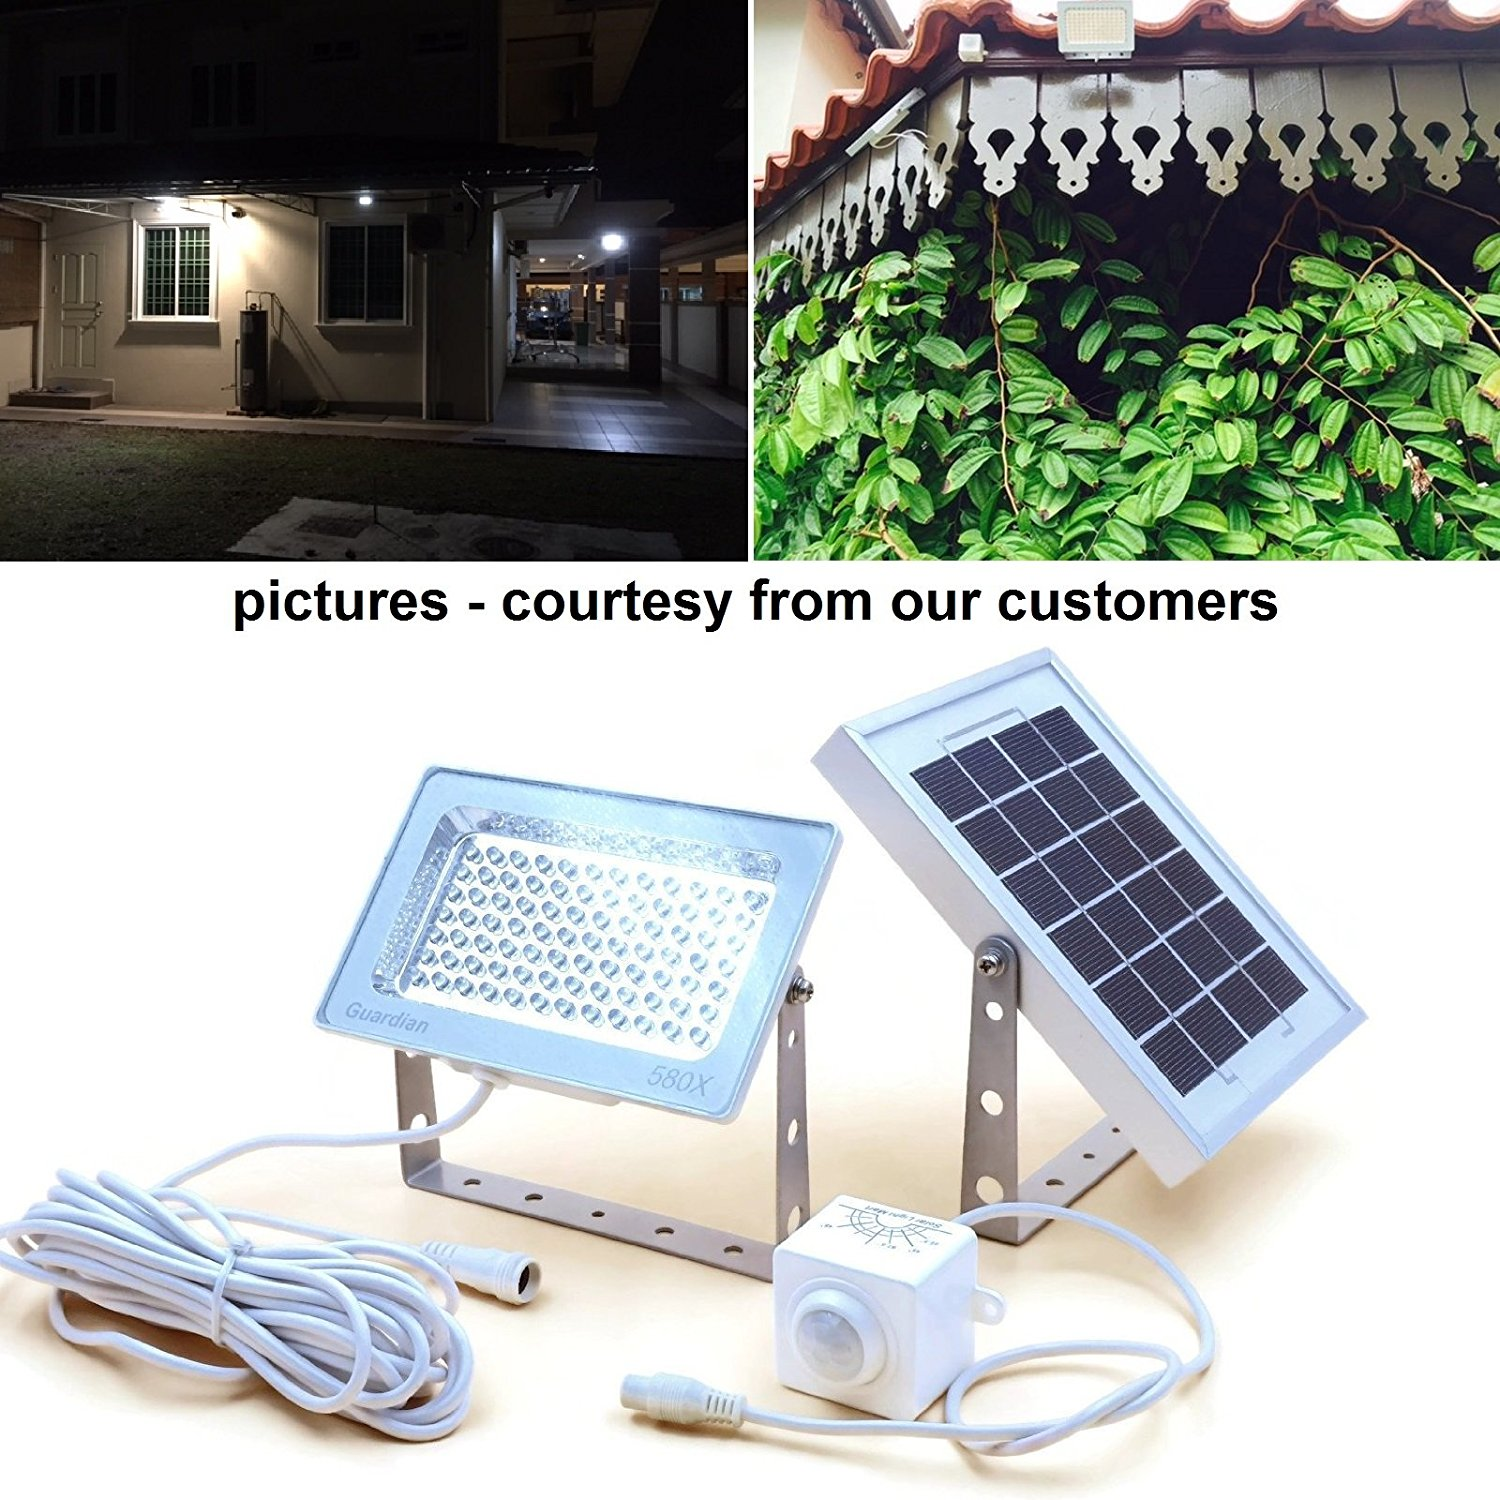 Guardian 580x Solar Security Floodlight With Standalone Pir